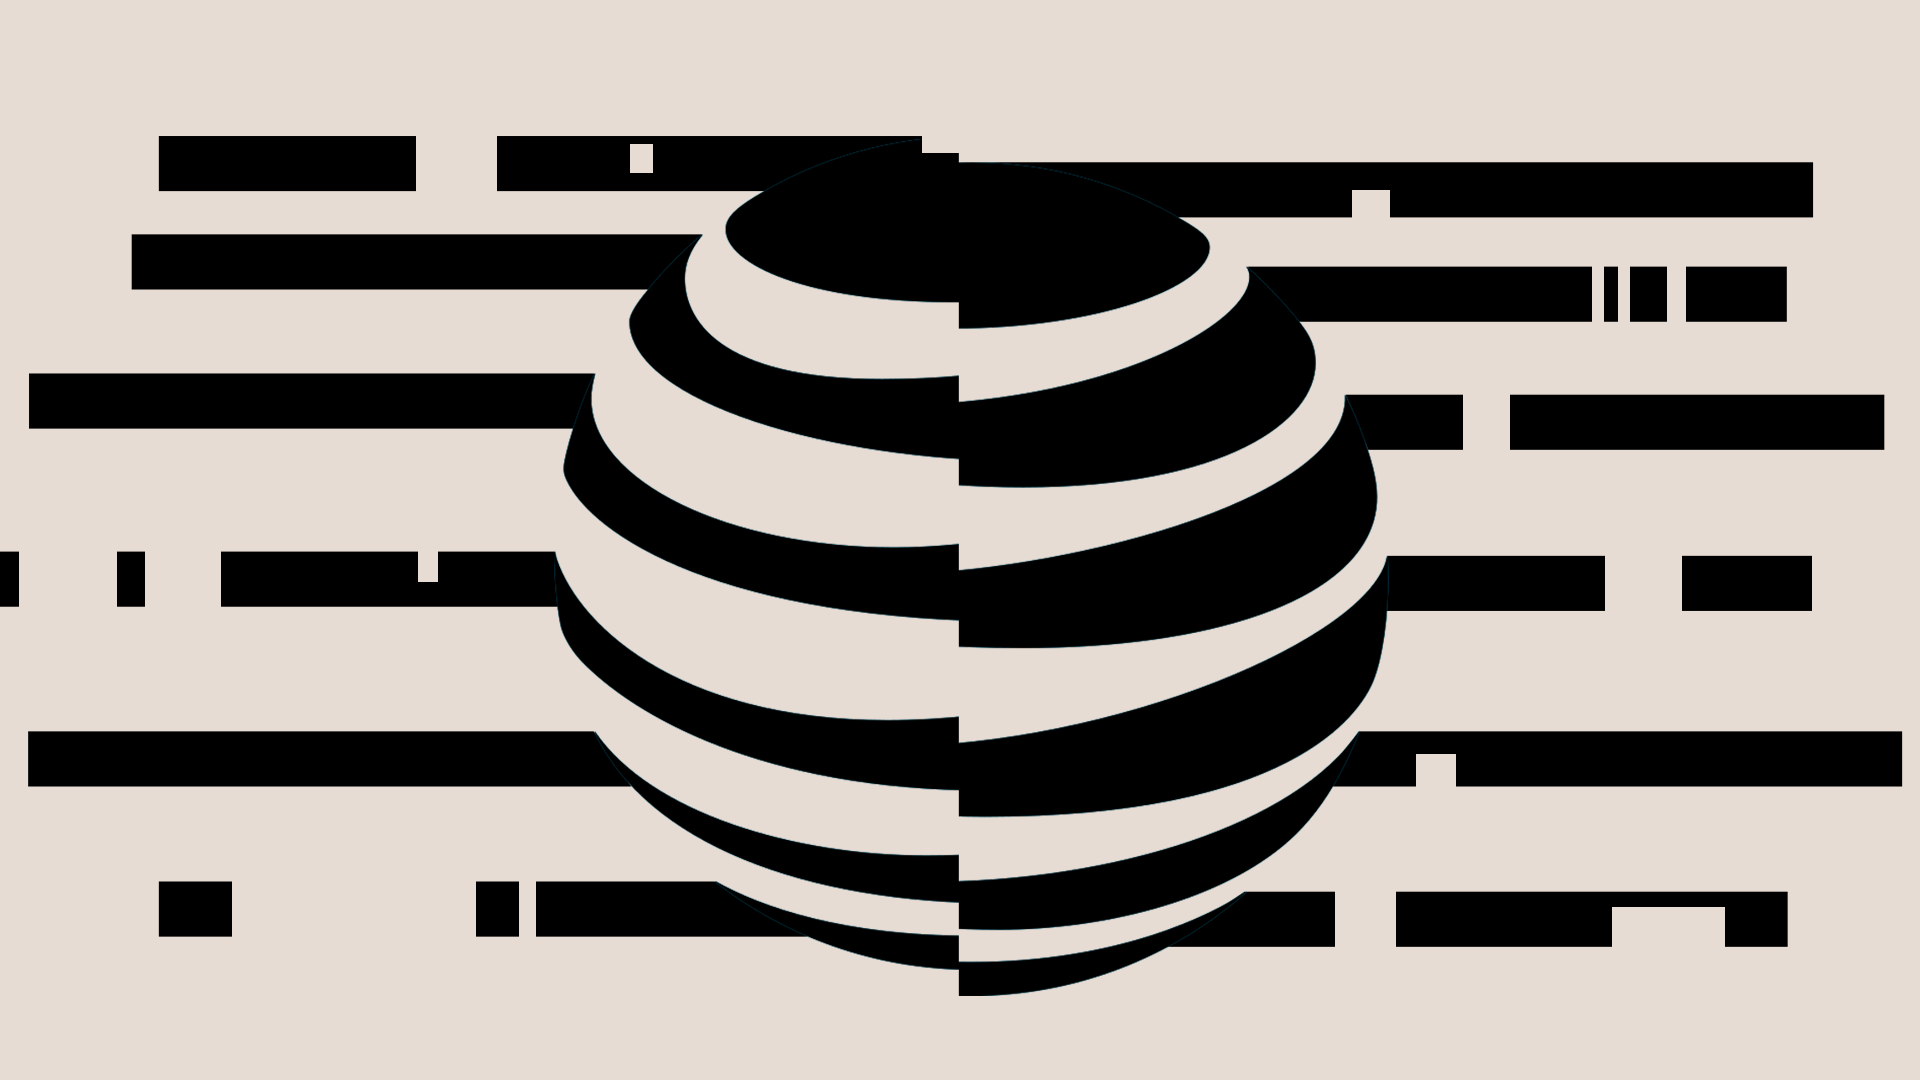 A graphic showing a mutated version of AT&T's logo